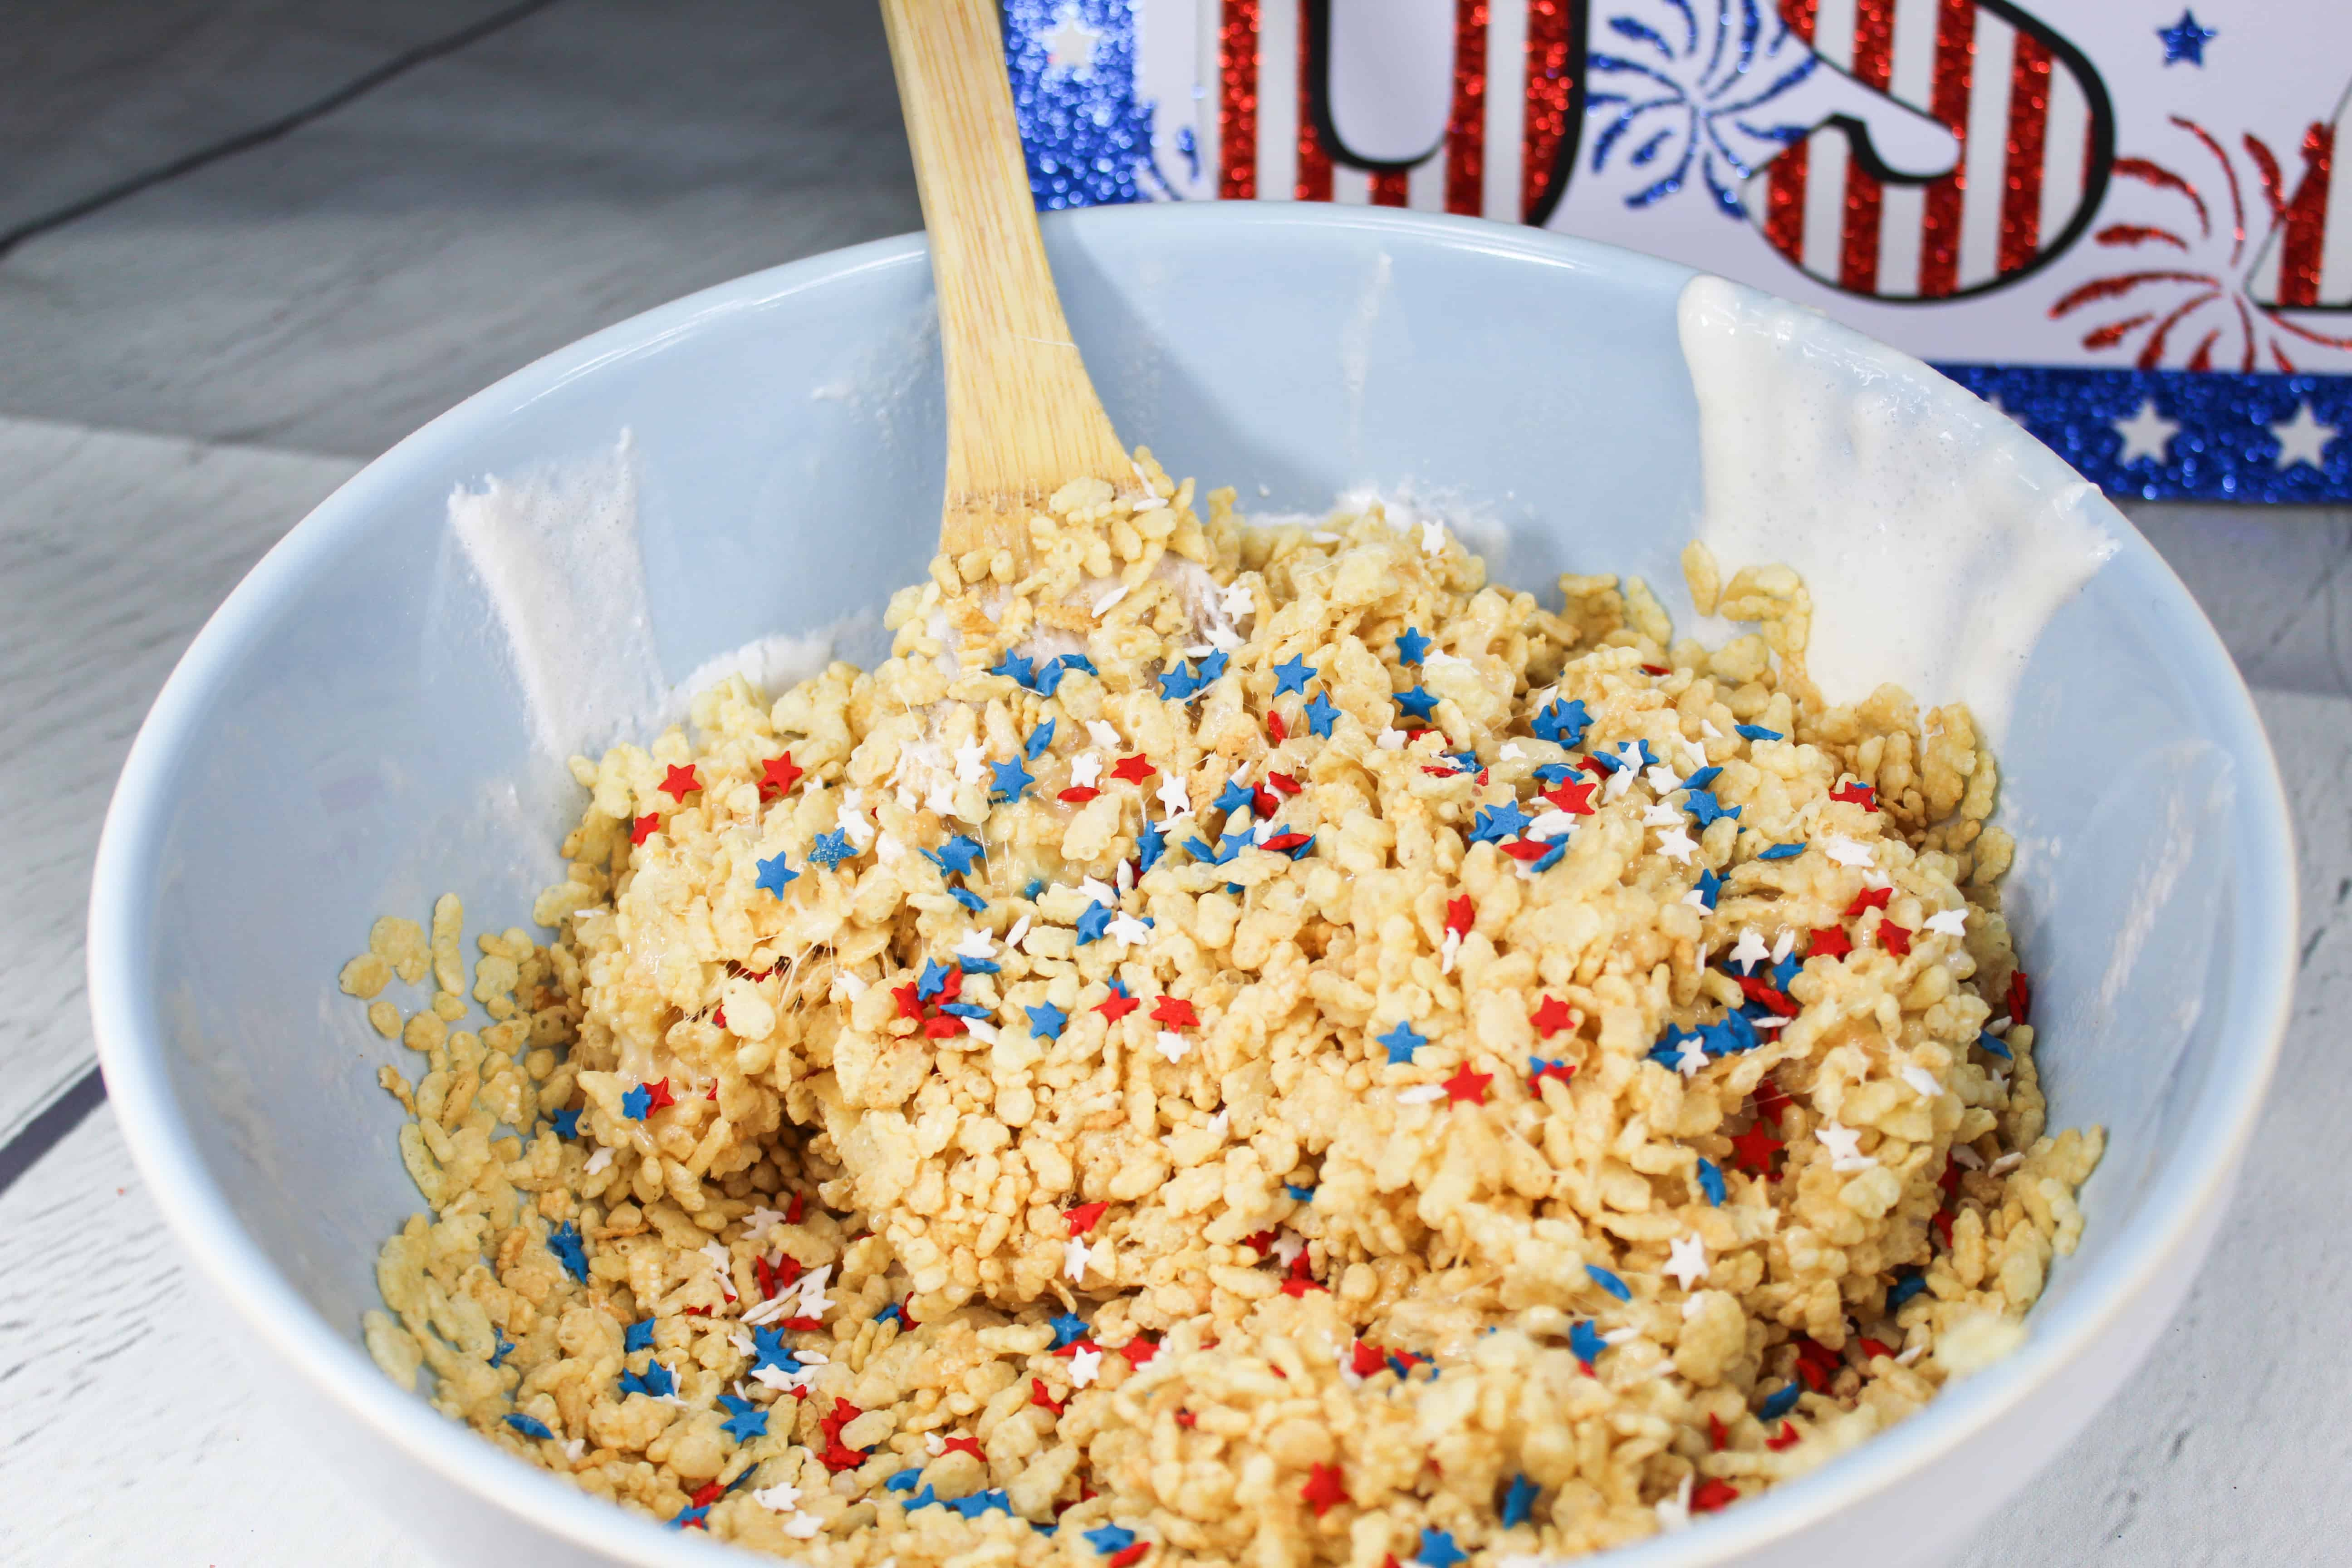 Stir star sprinkles into delicious red white and blue rice krispie treat batter